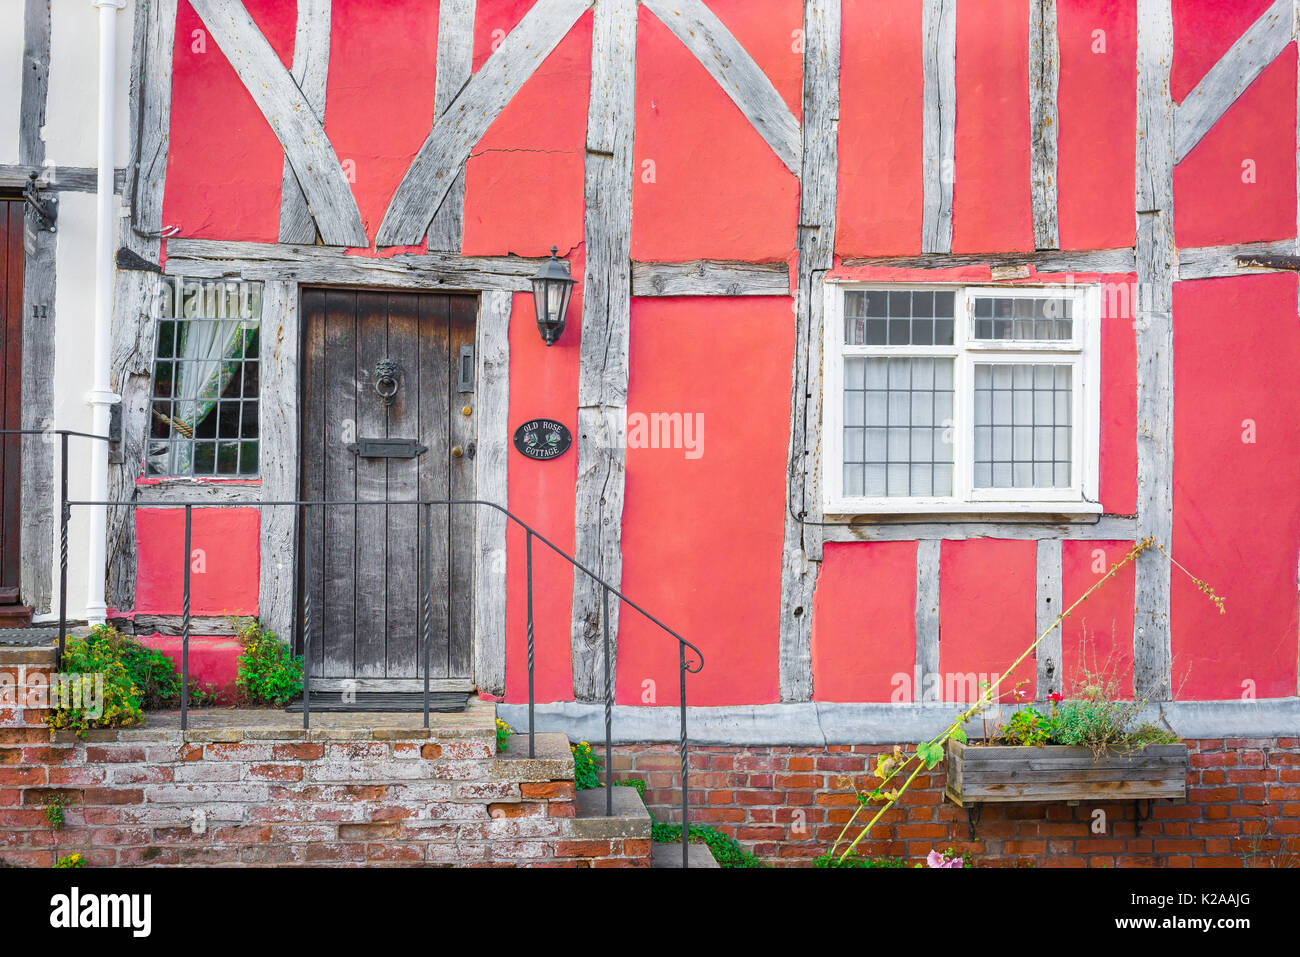 Lavenham Suffolk building, exterior detail of a medieval half timbered pink house in the Suffolk village of Lavenham, England, UK - Stock Image